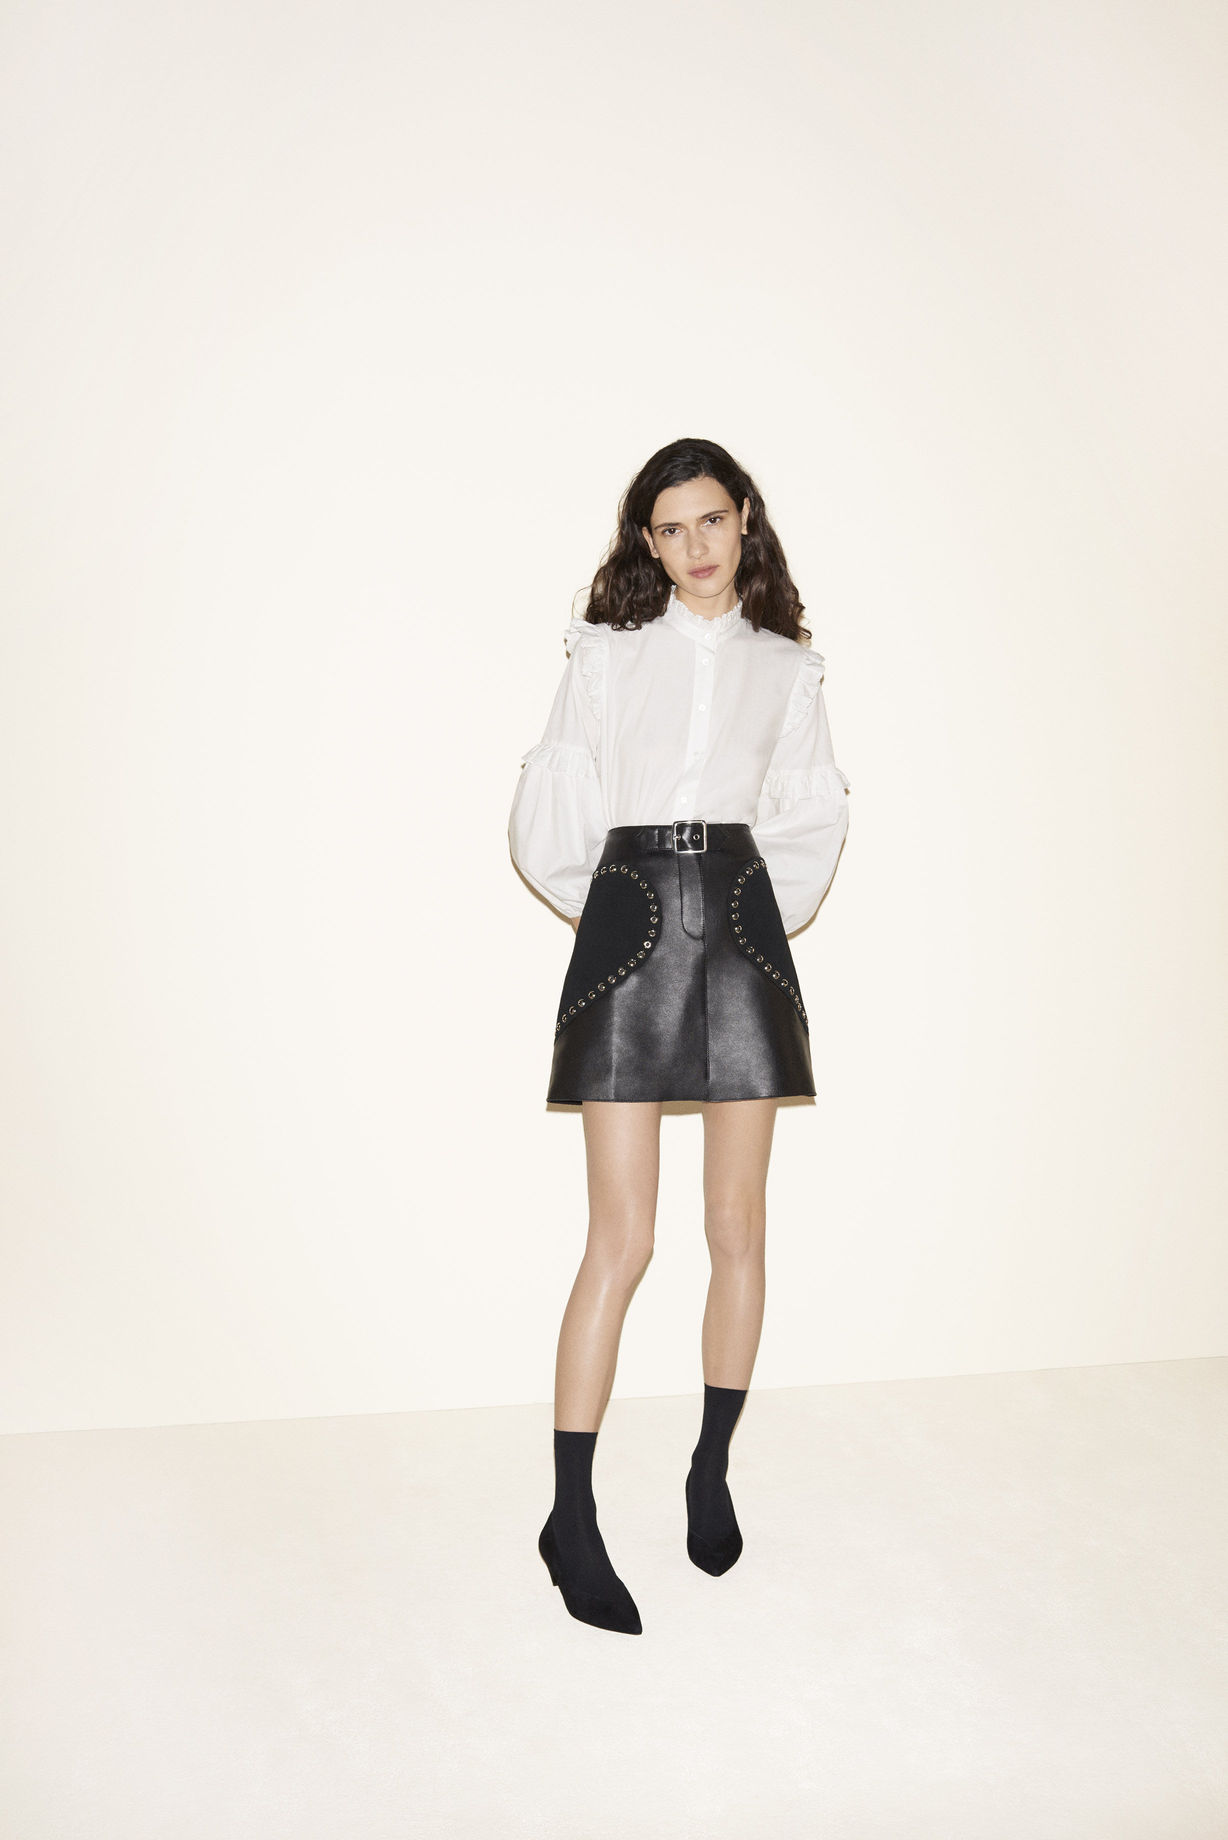 Poplin blouse, Leather A-line skirt, Suede goatskin court shoes - FW MAJE 2017 Lookbook